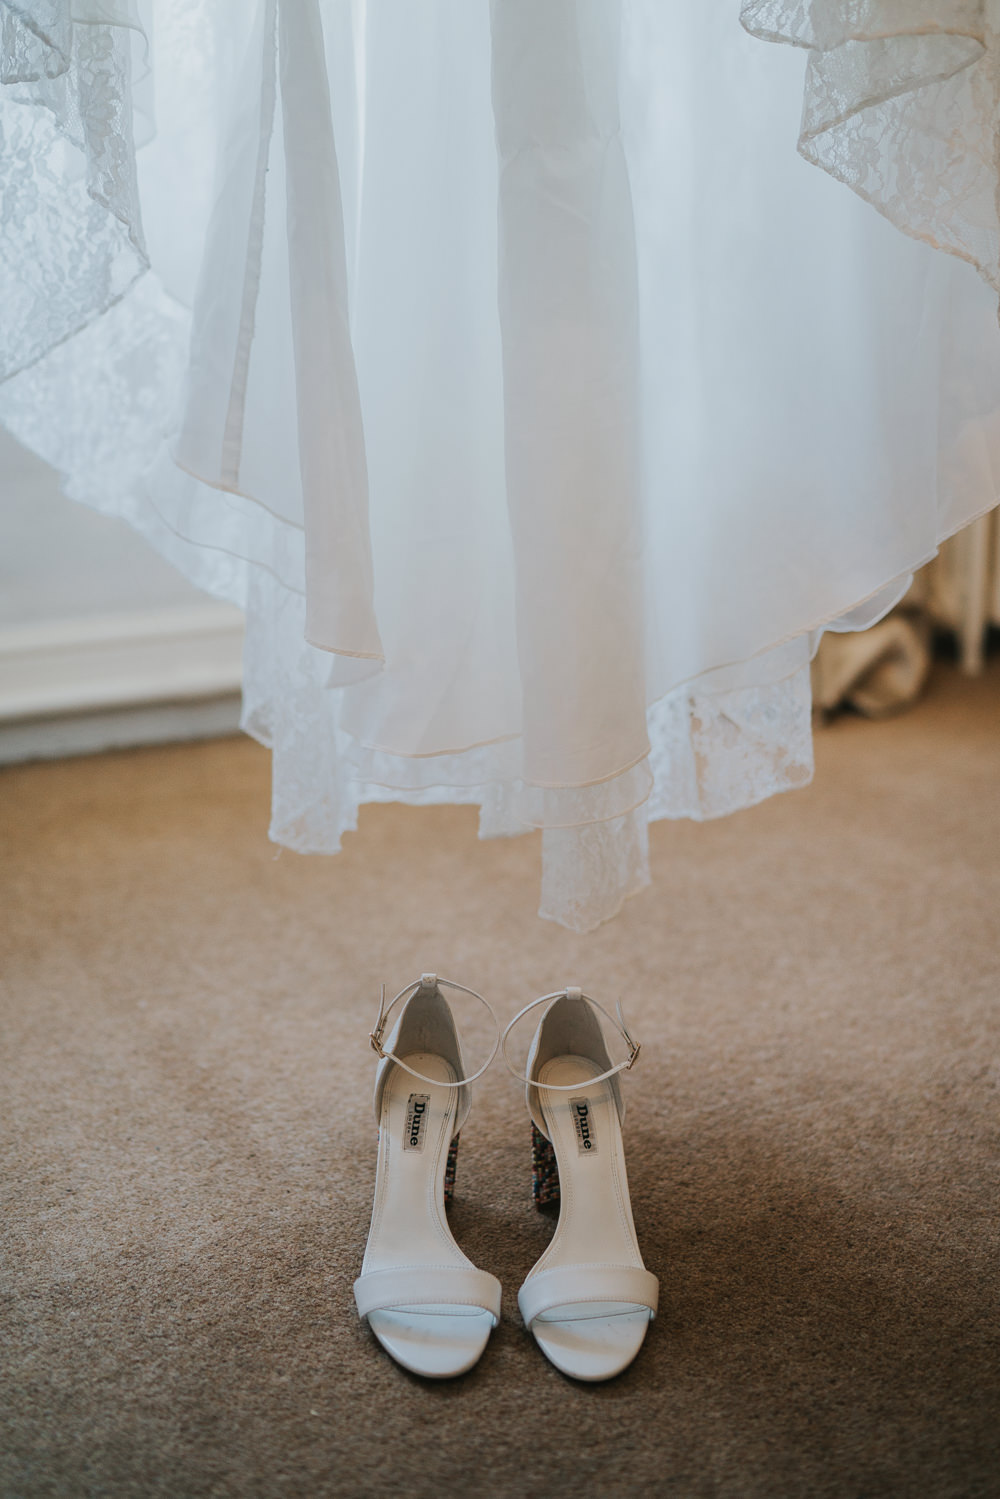 Outdoor Natural Relaxed Laid Back Summer White Dress Bridal Shoes Morning Bride Prep | Prested Hall Wedding Grace Elizabeth Photography